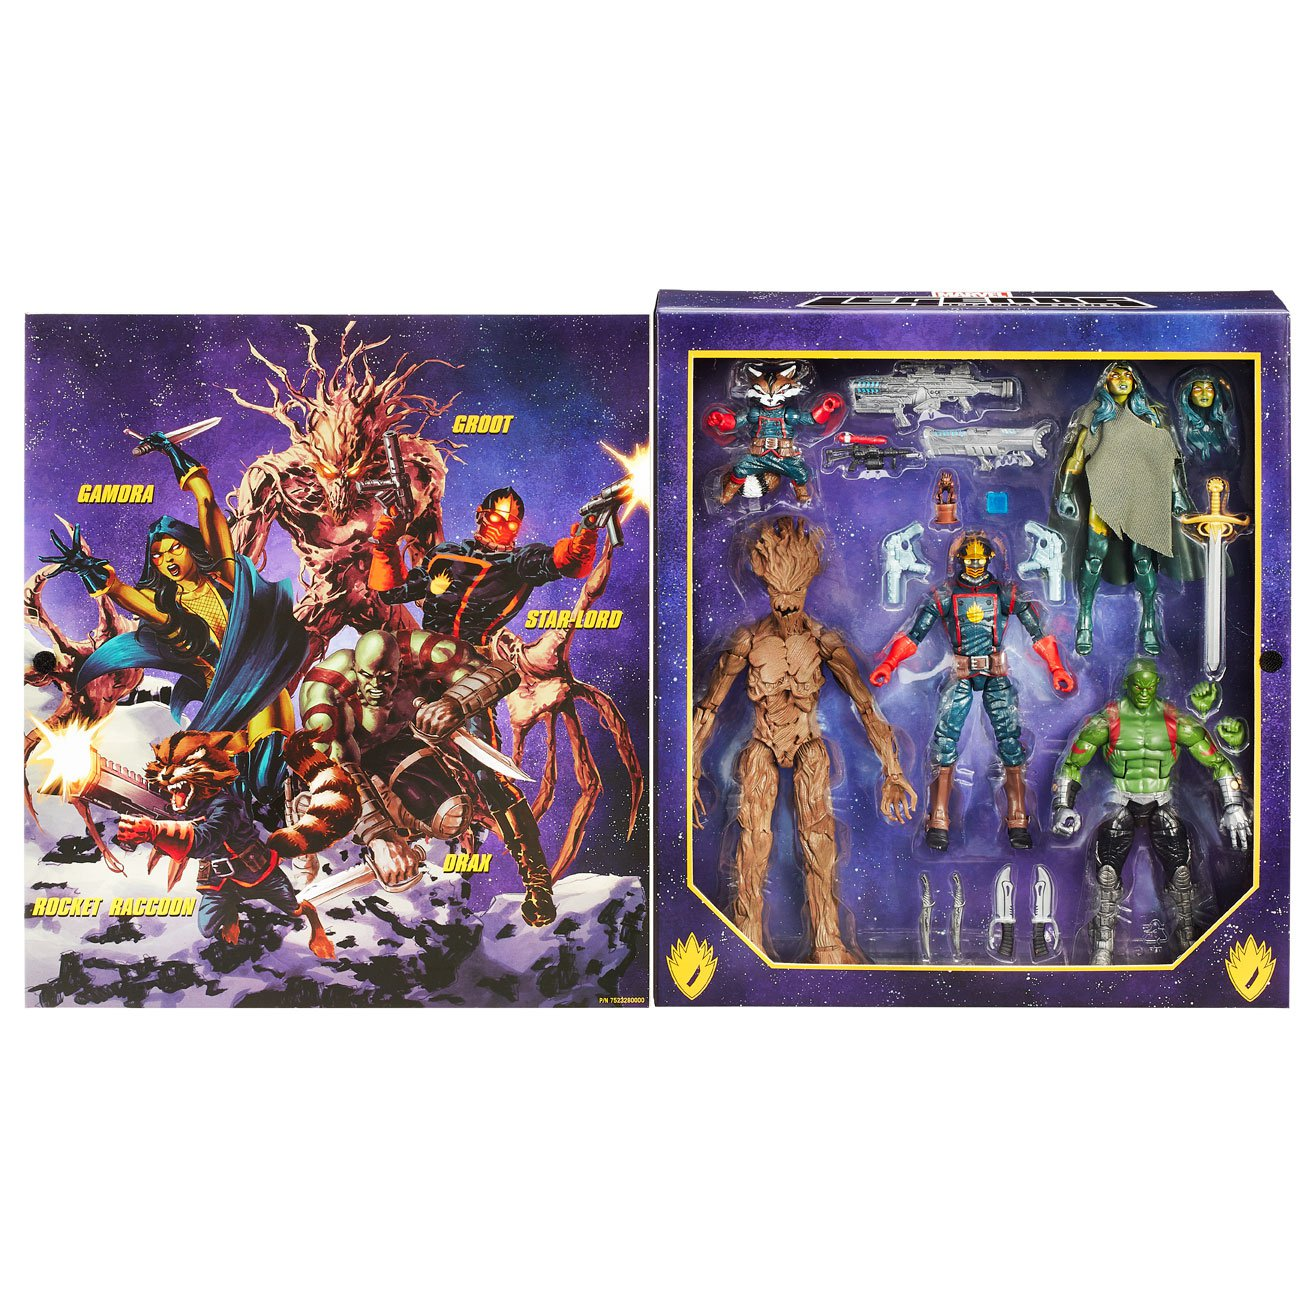 Entertainment Earth Exclusive Guardians Of The Galaxy Comic Edition Marvel Legends Action Figure Set Packaging Images